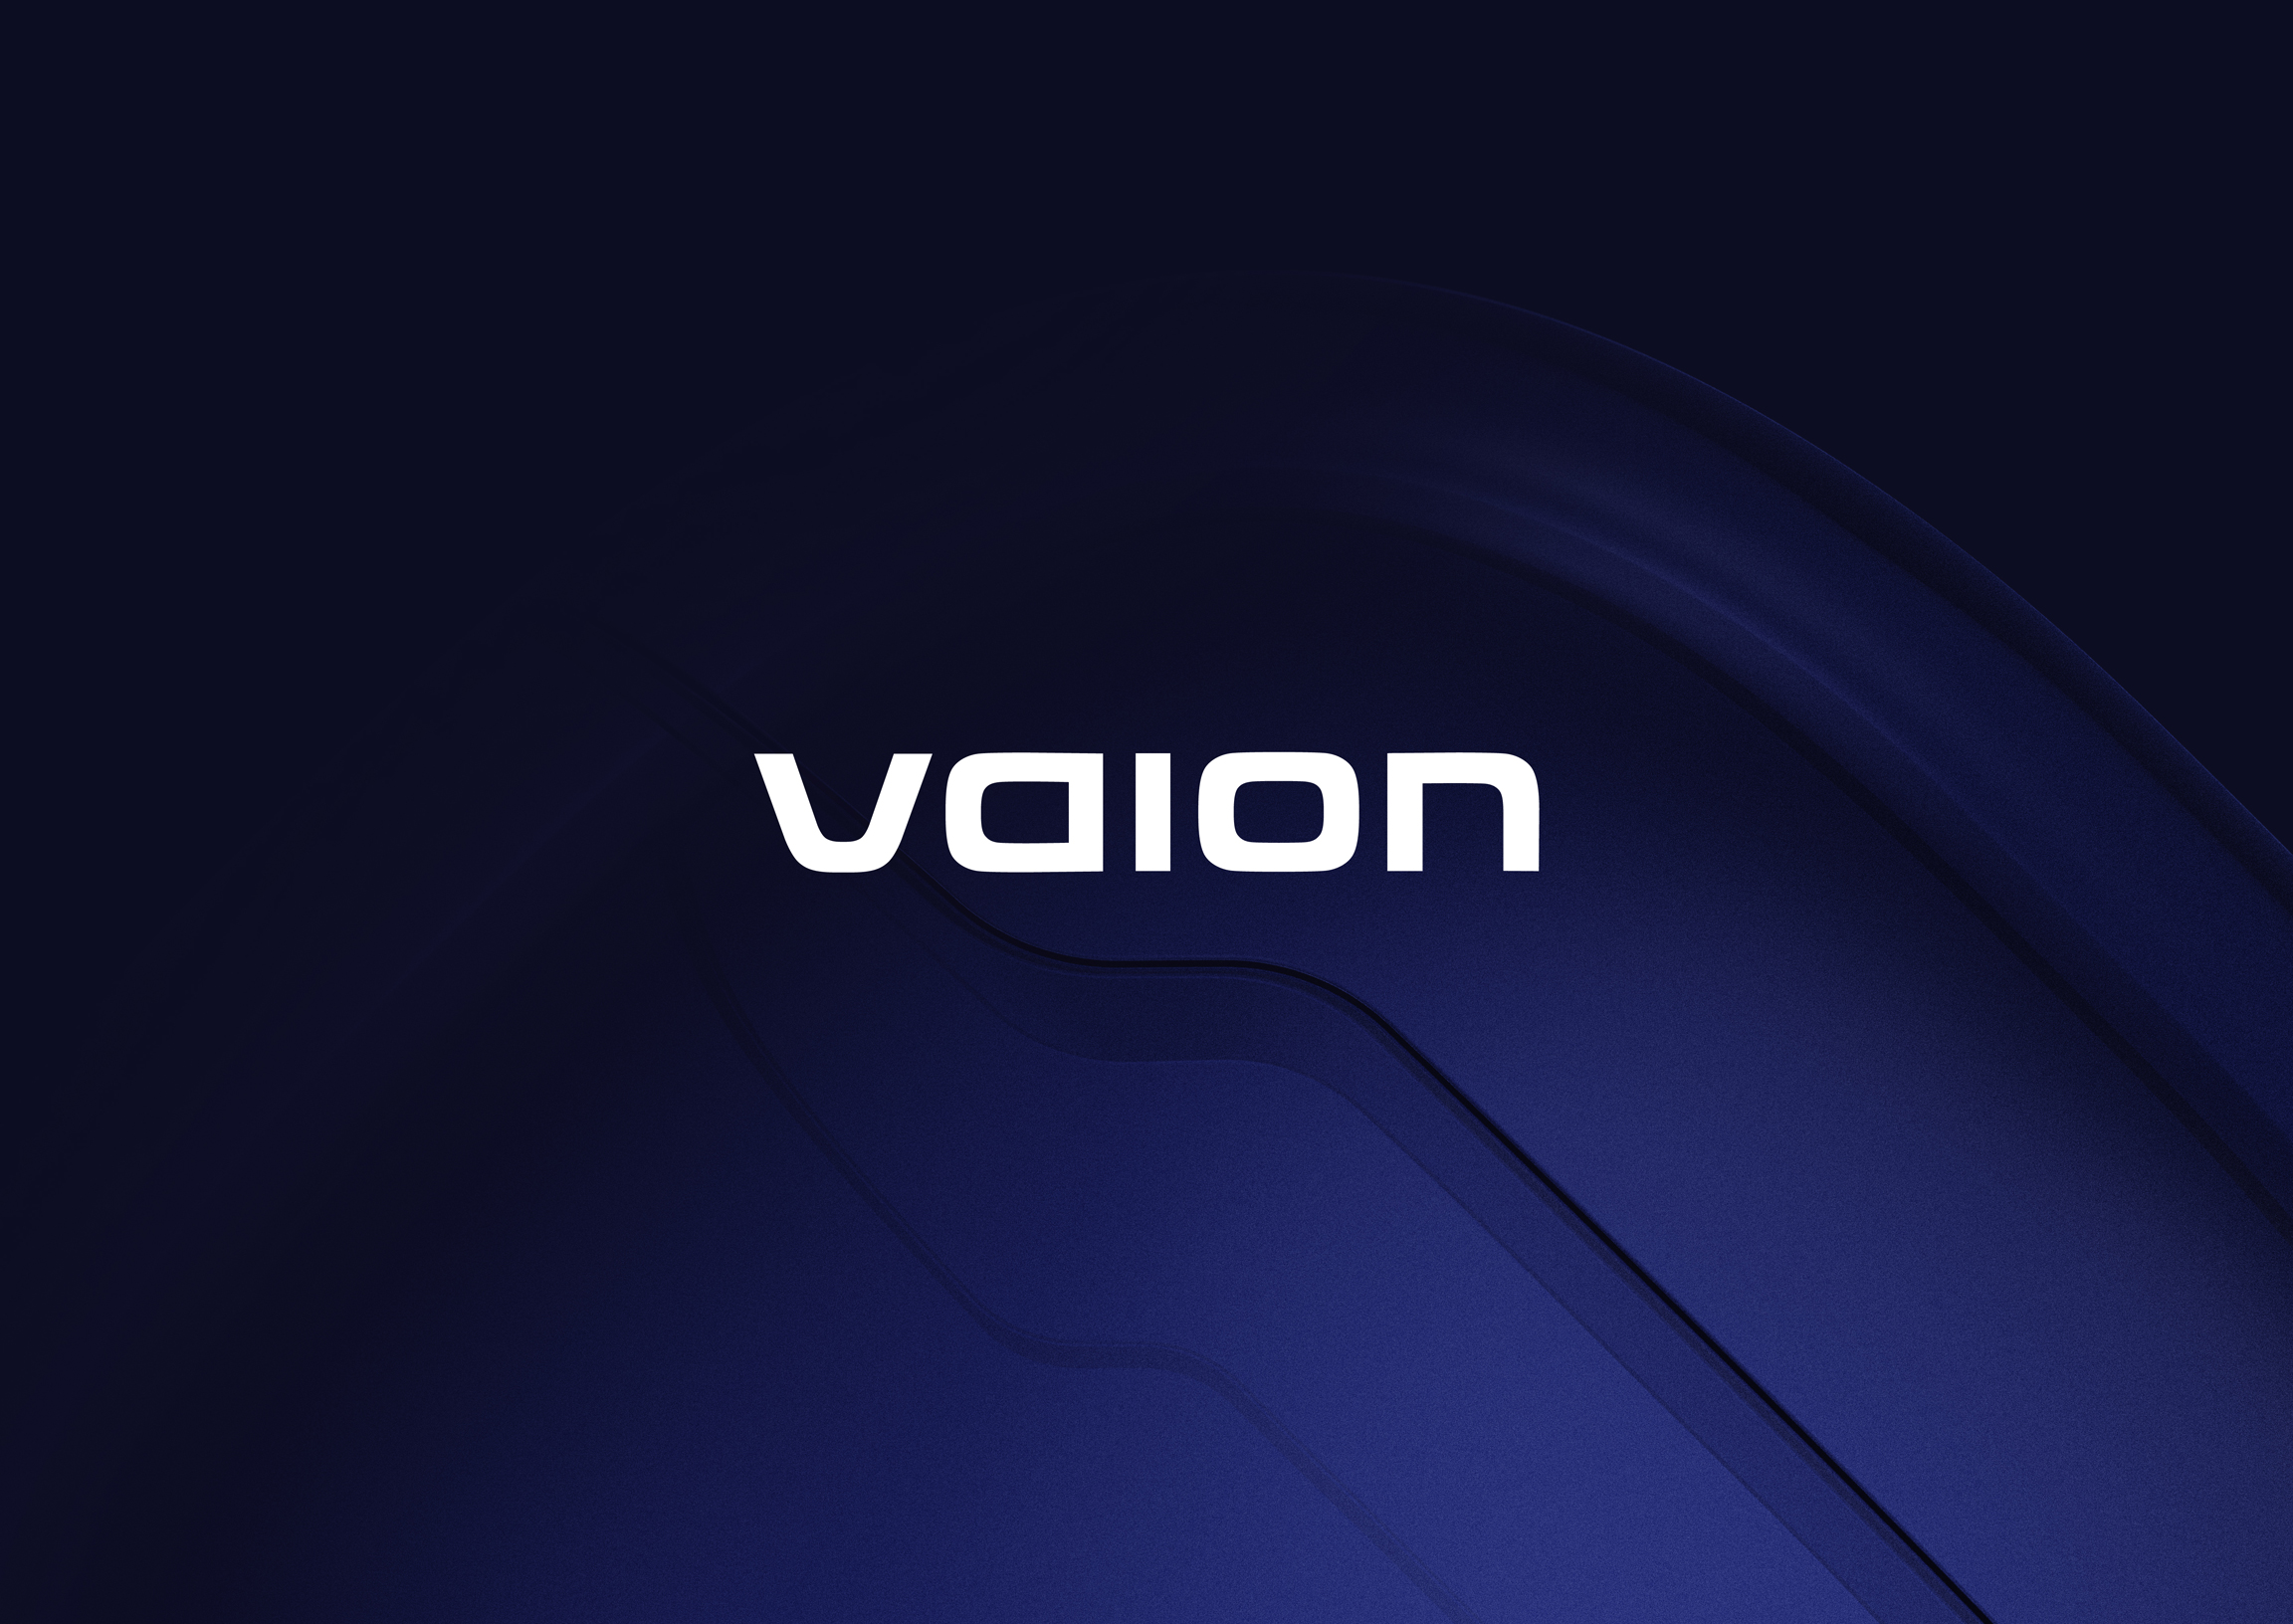 Vaion Logo in a blue background